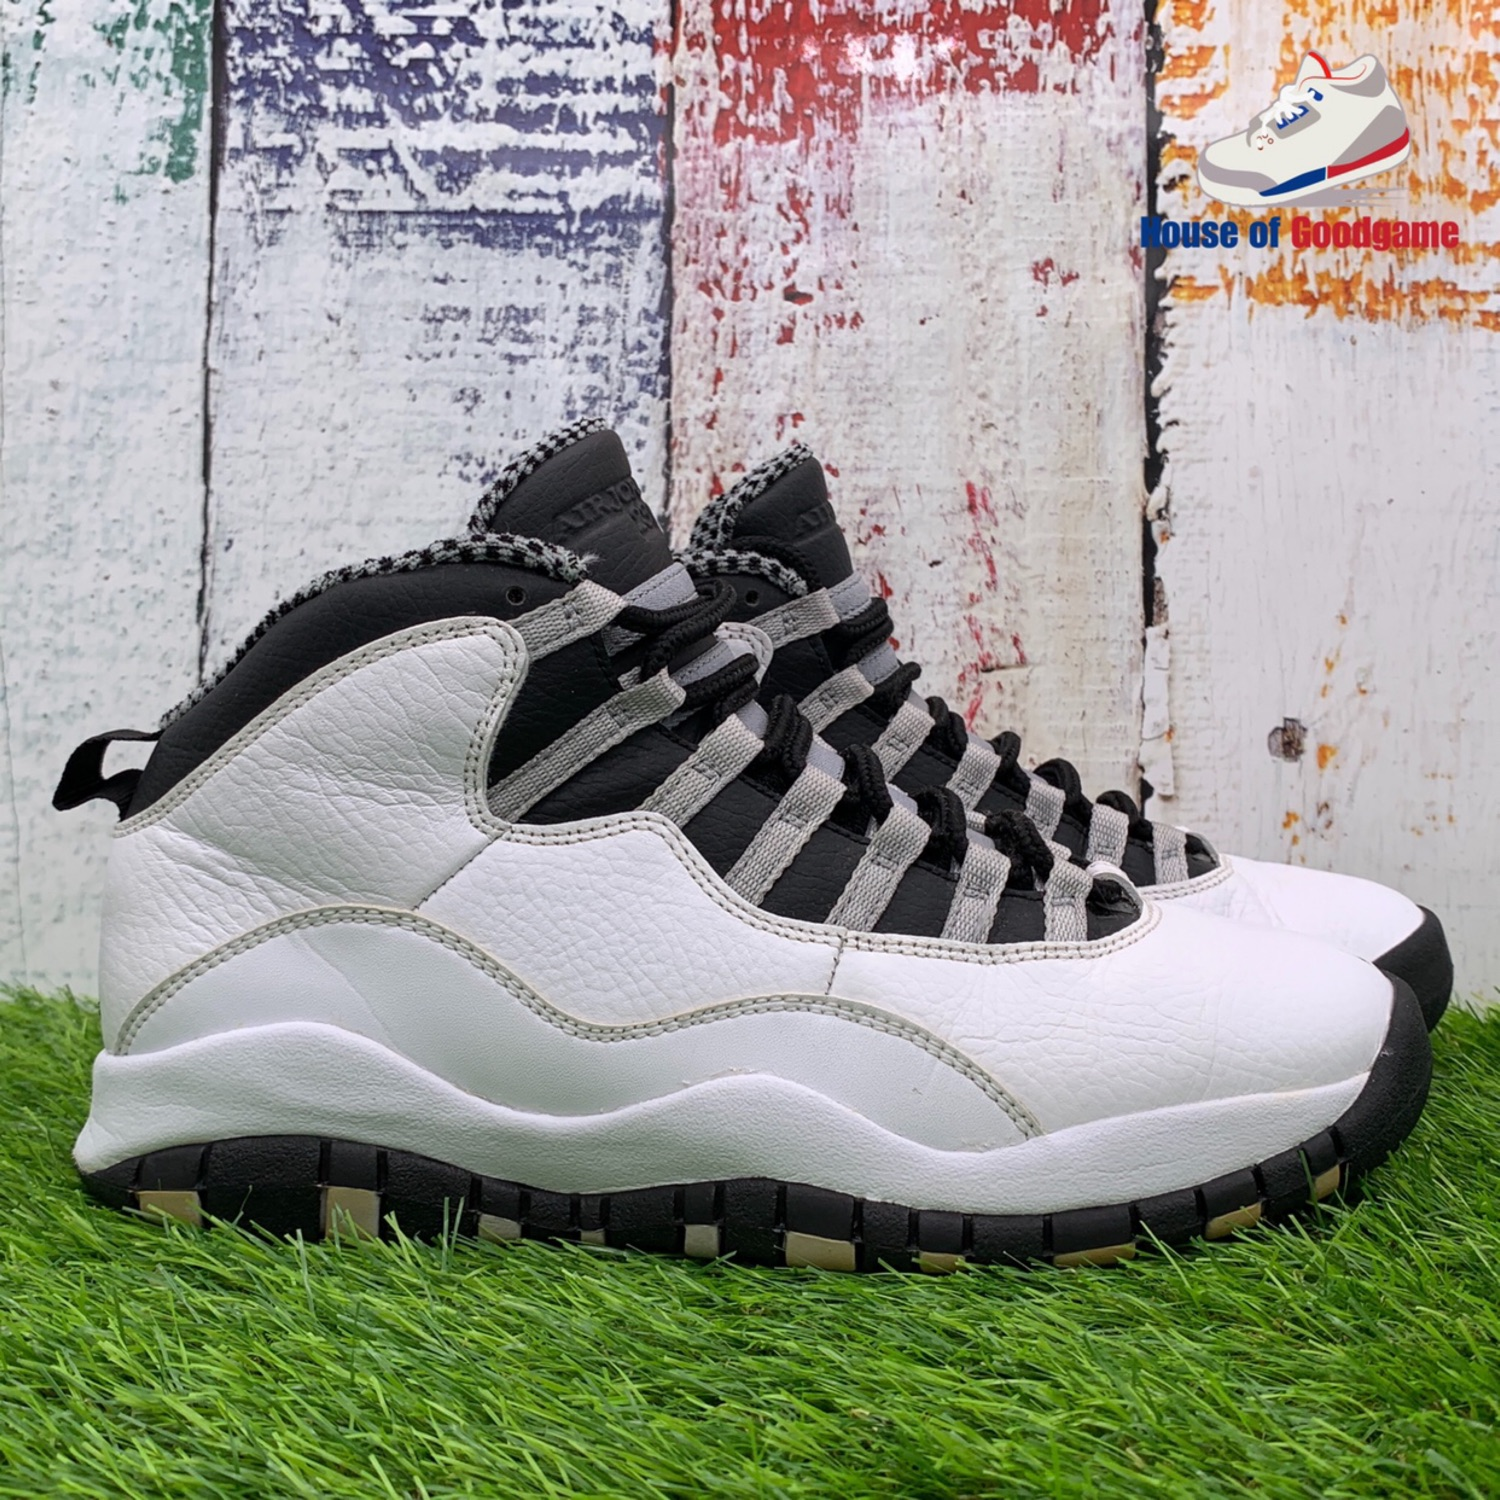 premium selection a14e8 04085 Nike Air Jordan 10 Steel